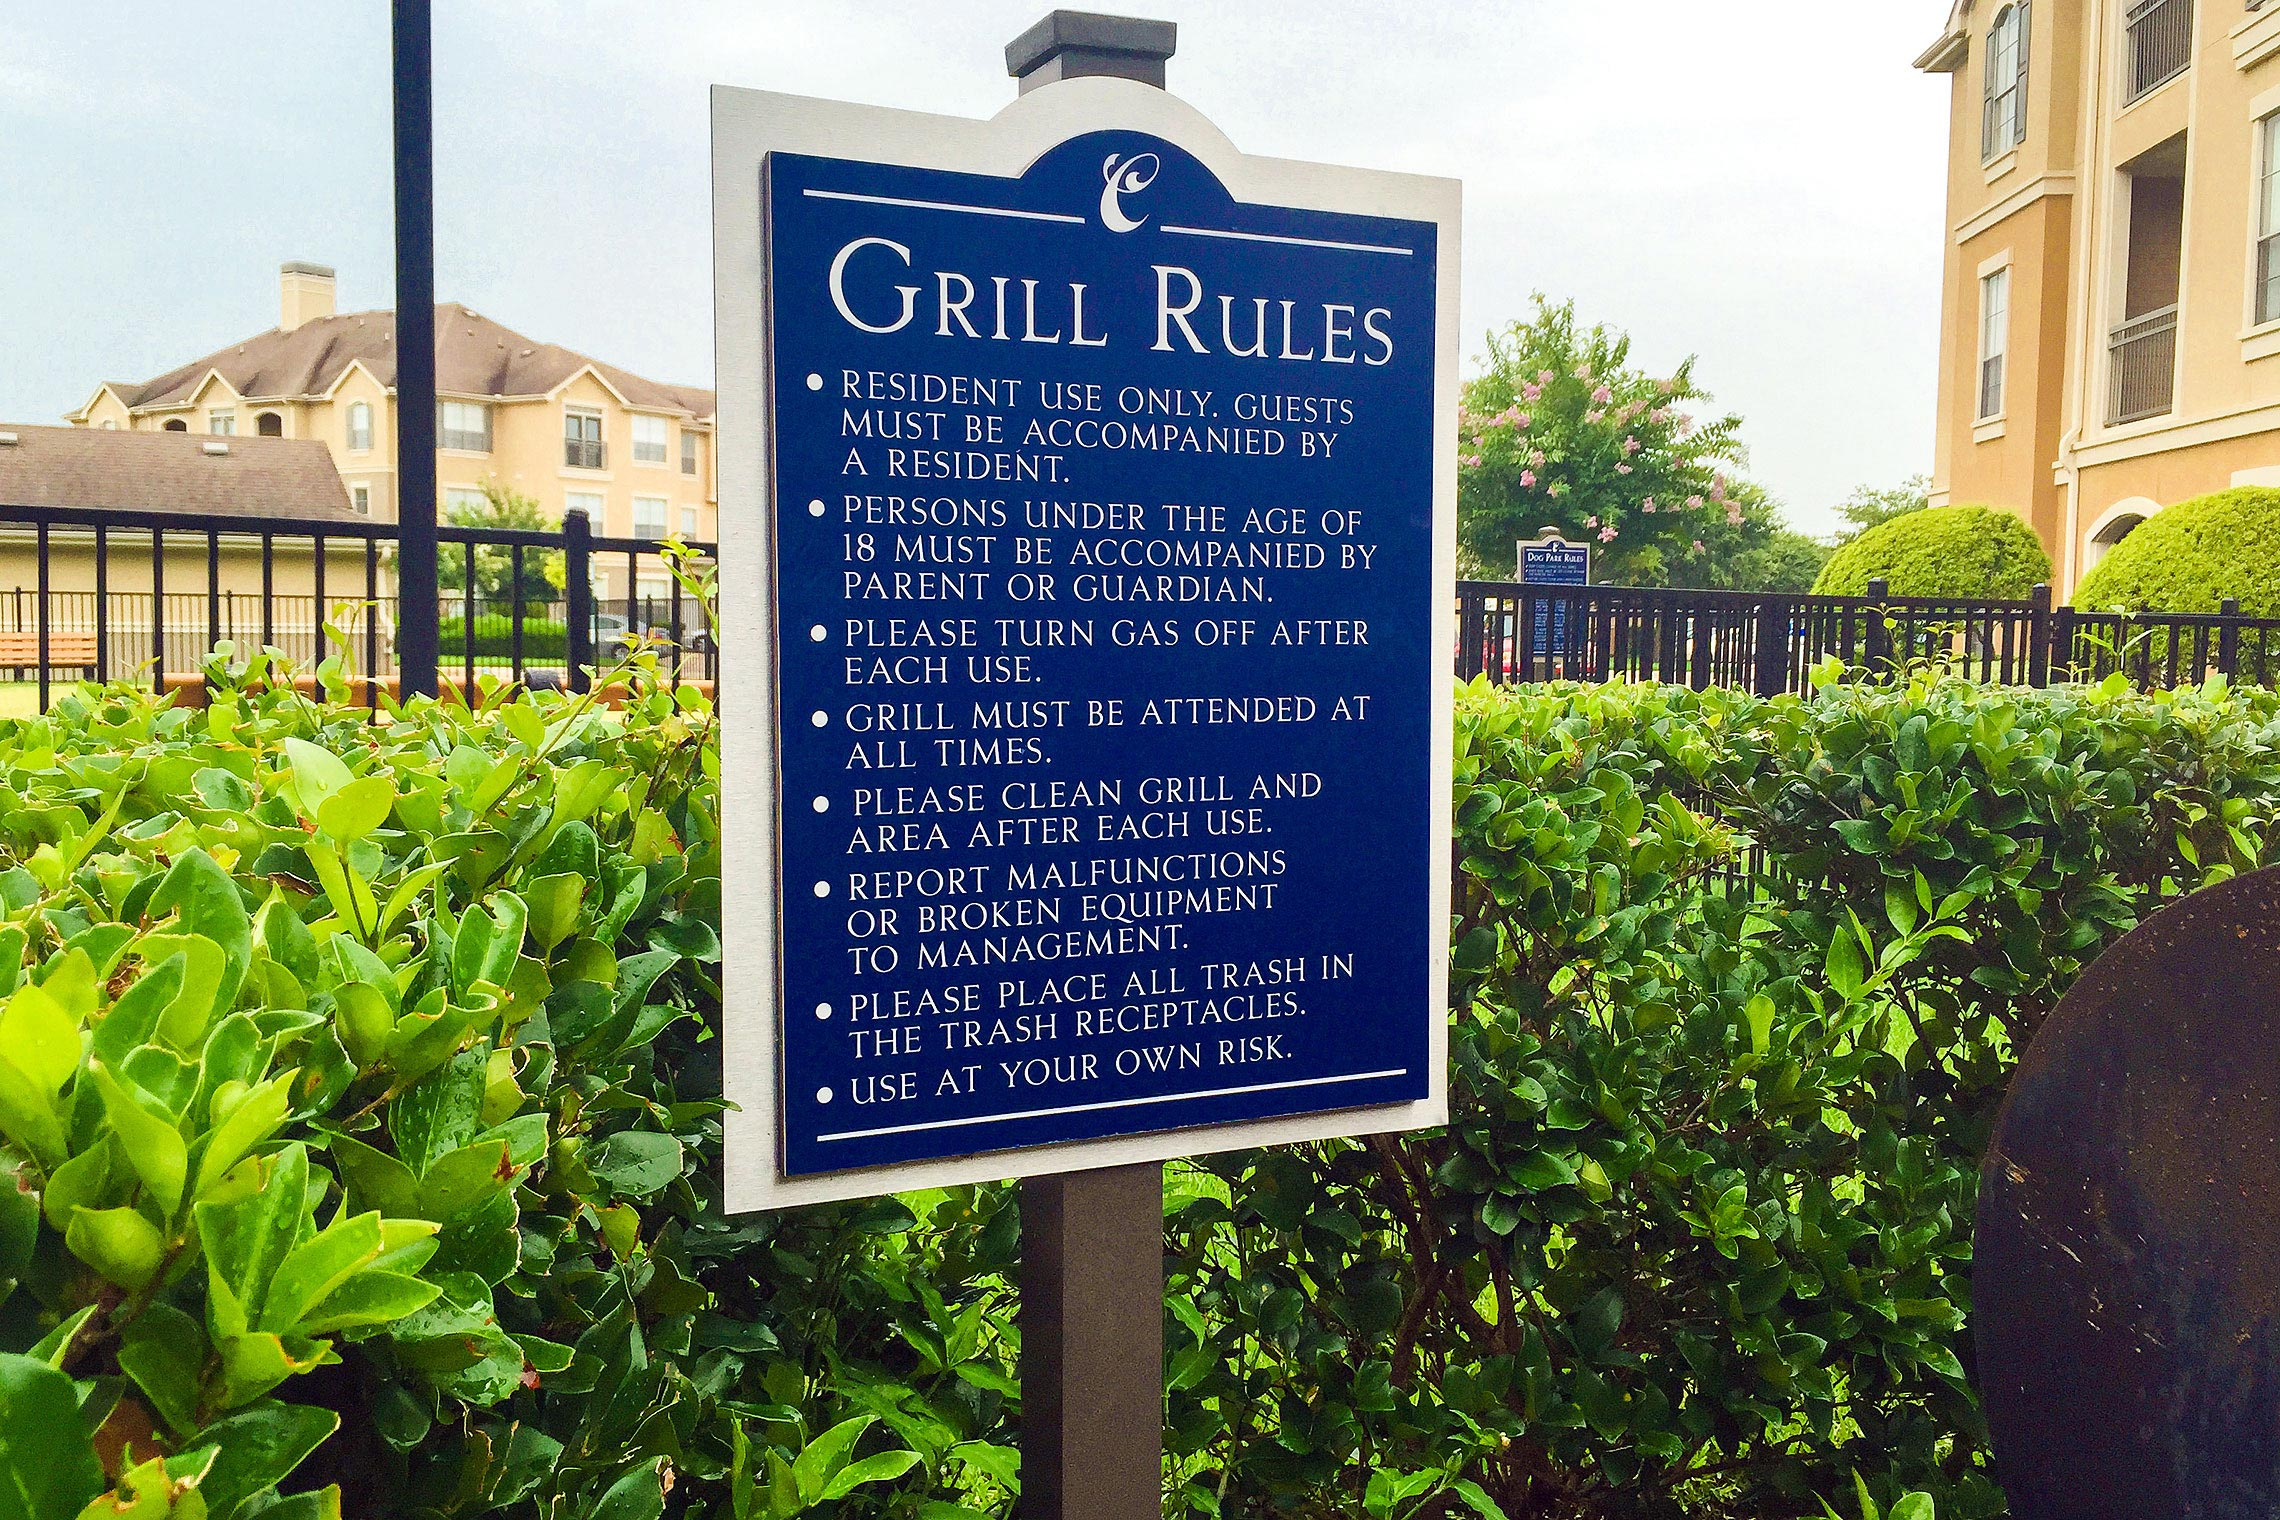 Arium Grill Rules Sign on Post